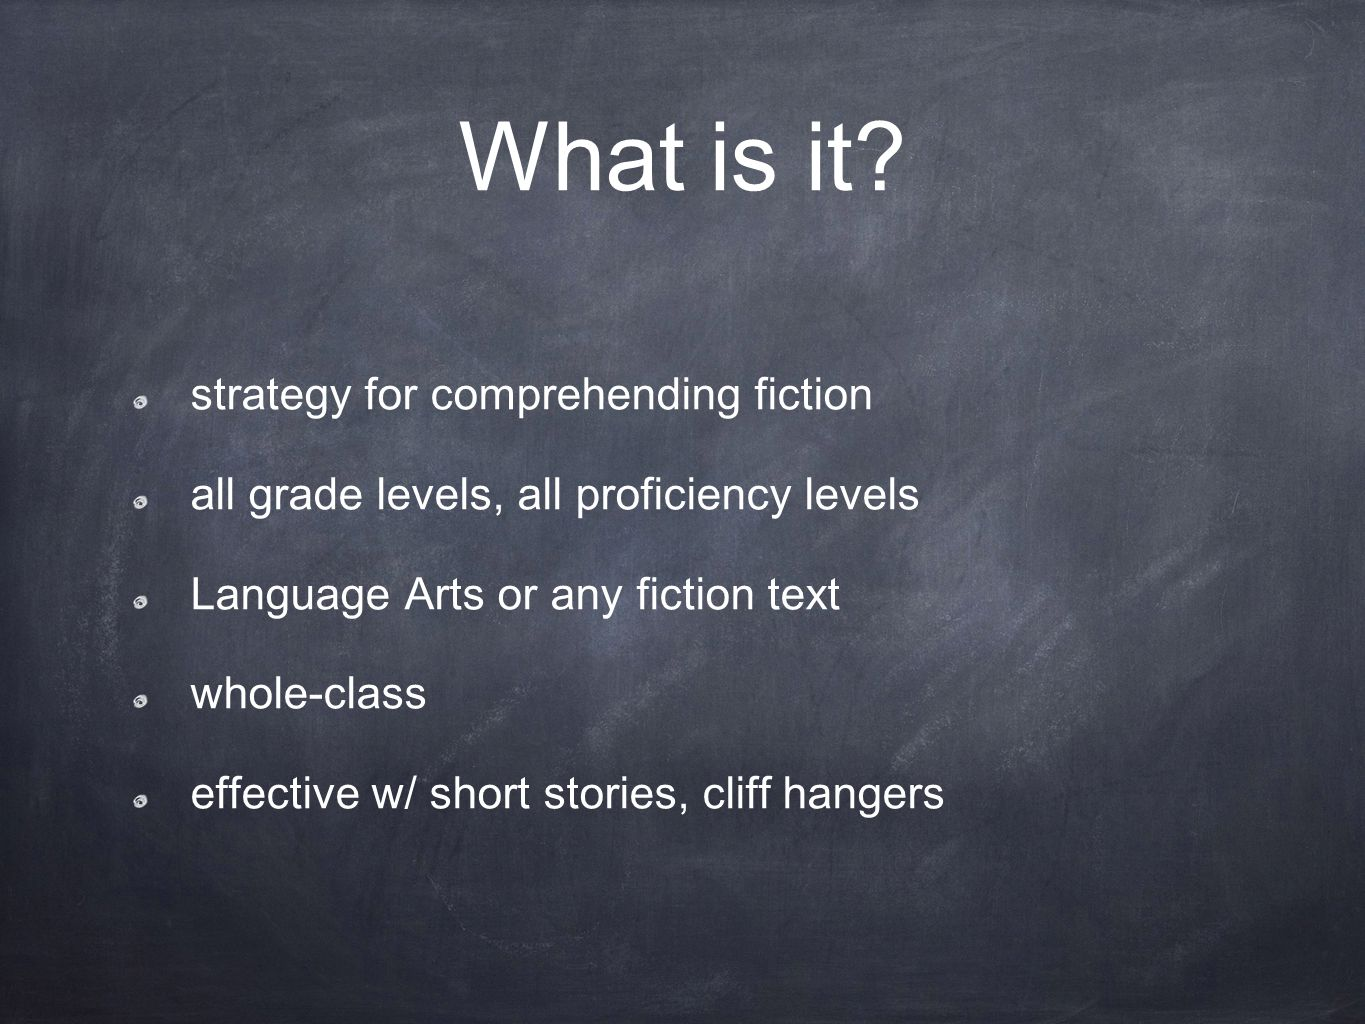 What is it strategy for comprehending fiction